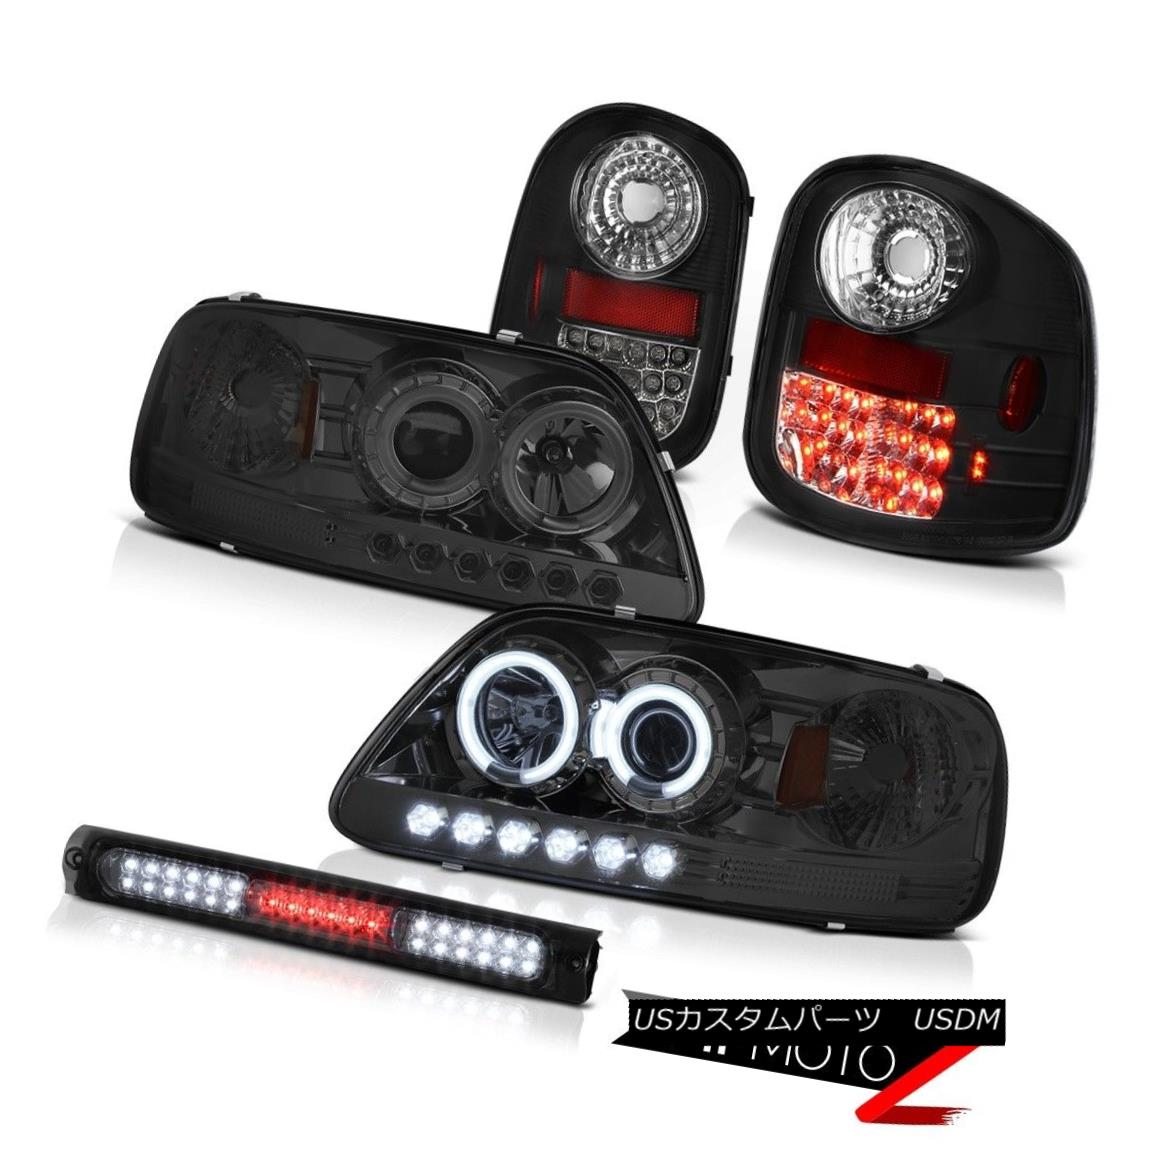 テールライト Quality CCFL Headlights Bright L.E.D Tail Lights Brake 97-03 F150 Flareside SVT 品質CCFLヘッドライトブライトL.E.Dテールライトブレーキ97-03 F150 Flareside SVT